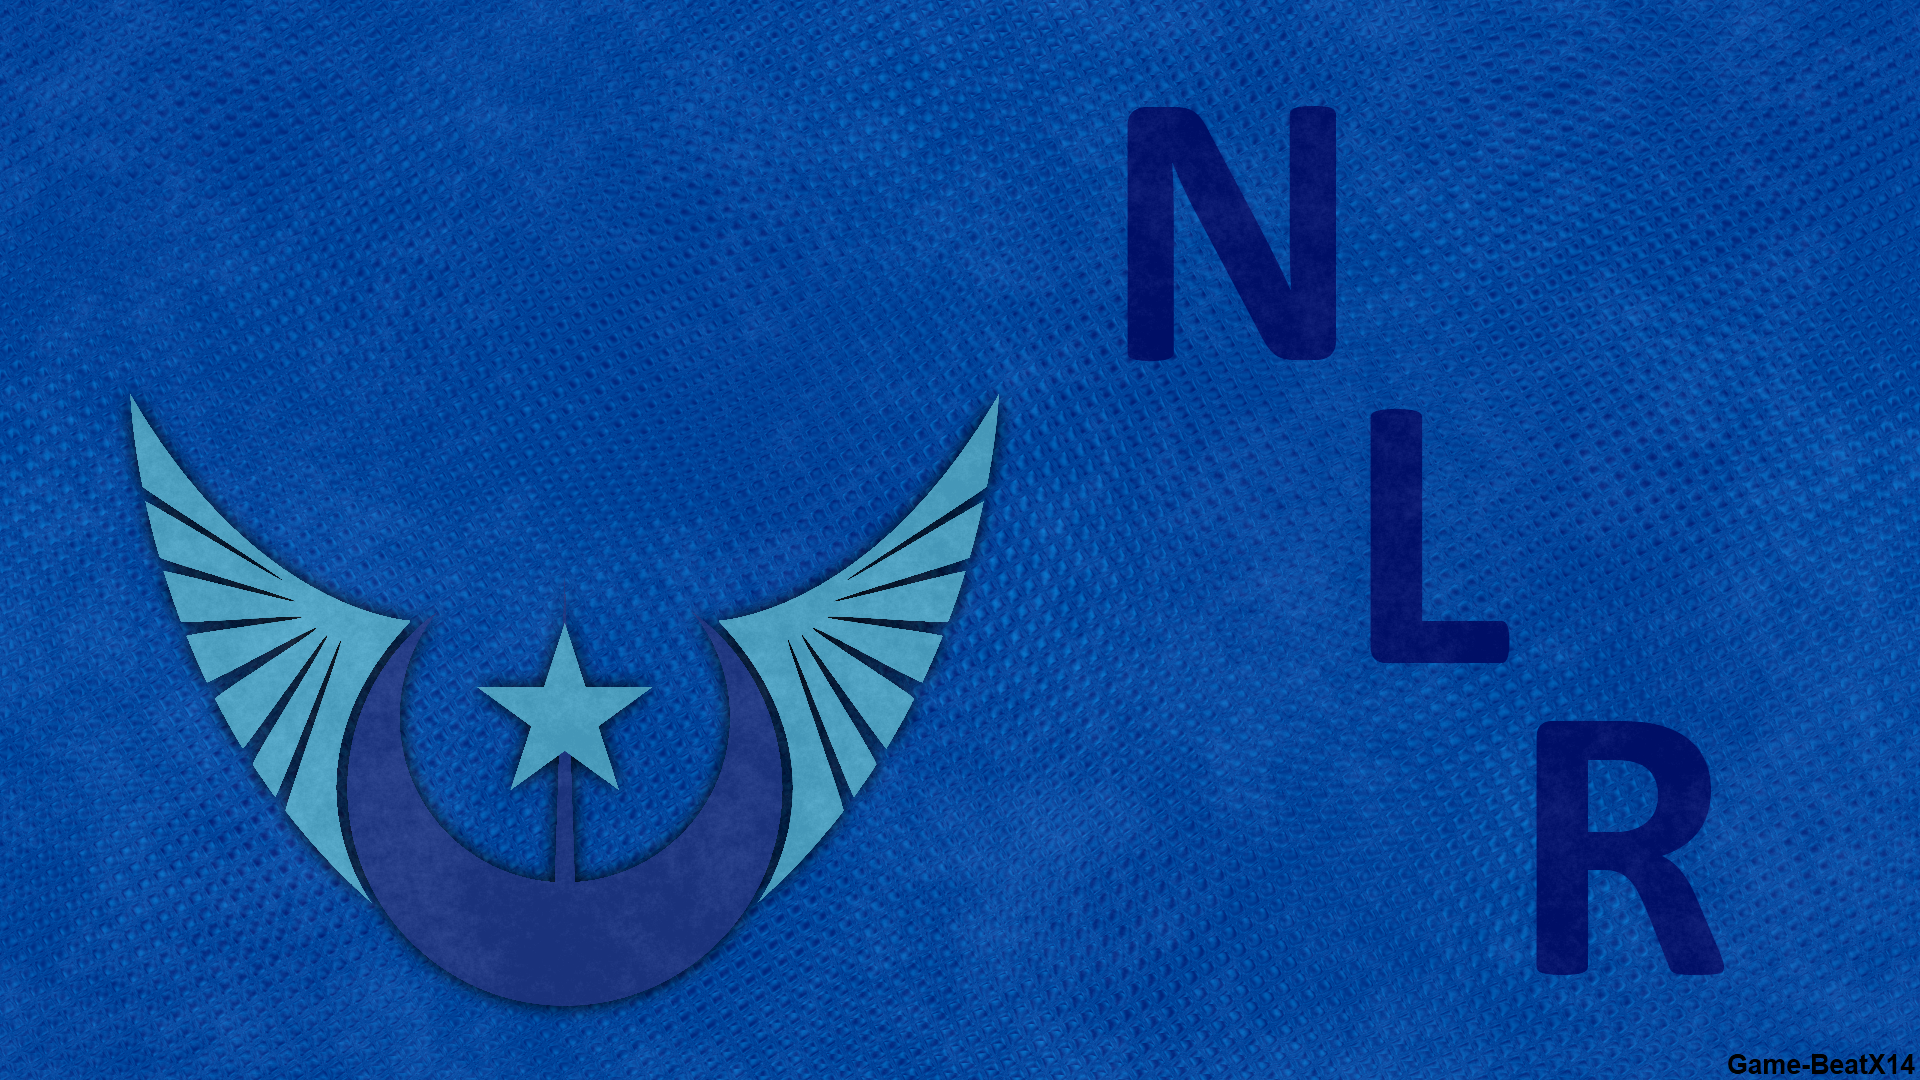 New Lunar Republic Wallpaper by Emkay-MLP and Game-BeatX14